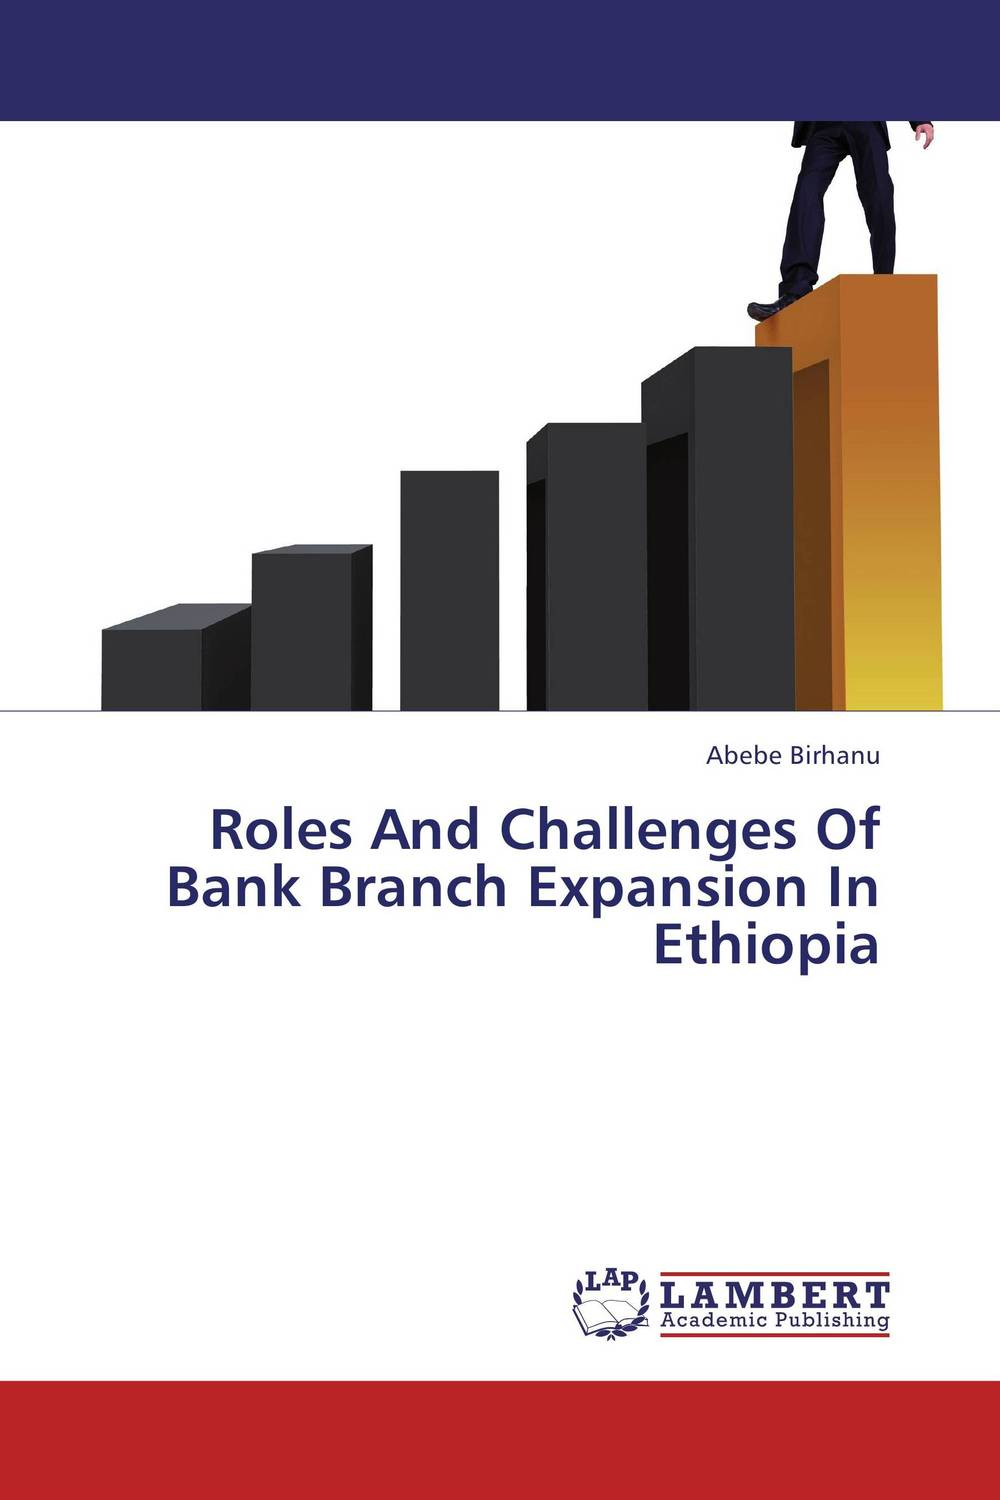 где купить Roles And Challenges Of Bank Branch Expansion In Ethiopia по лучшей цене